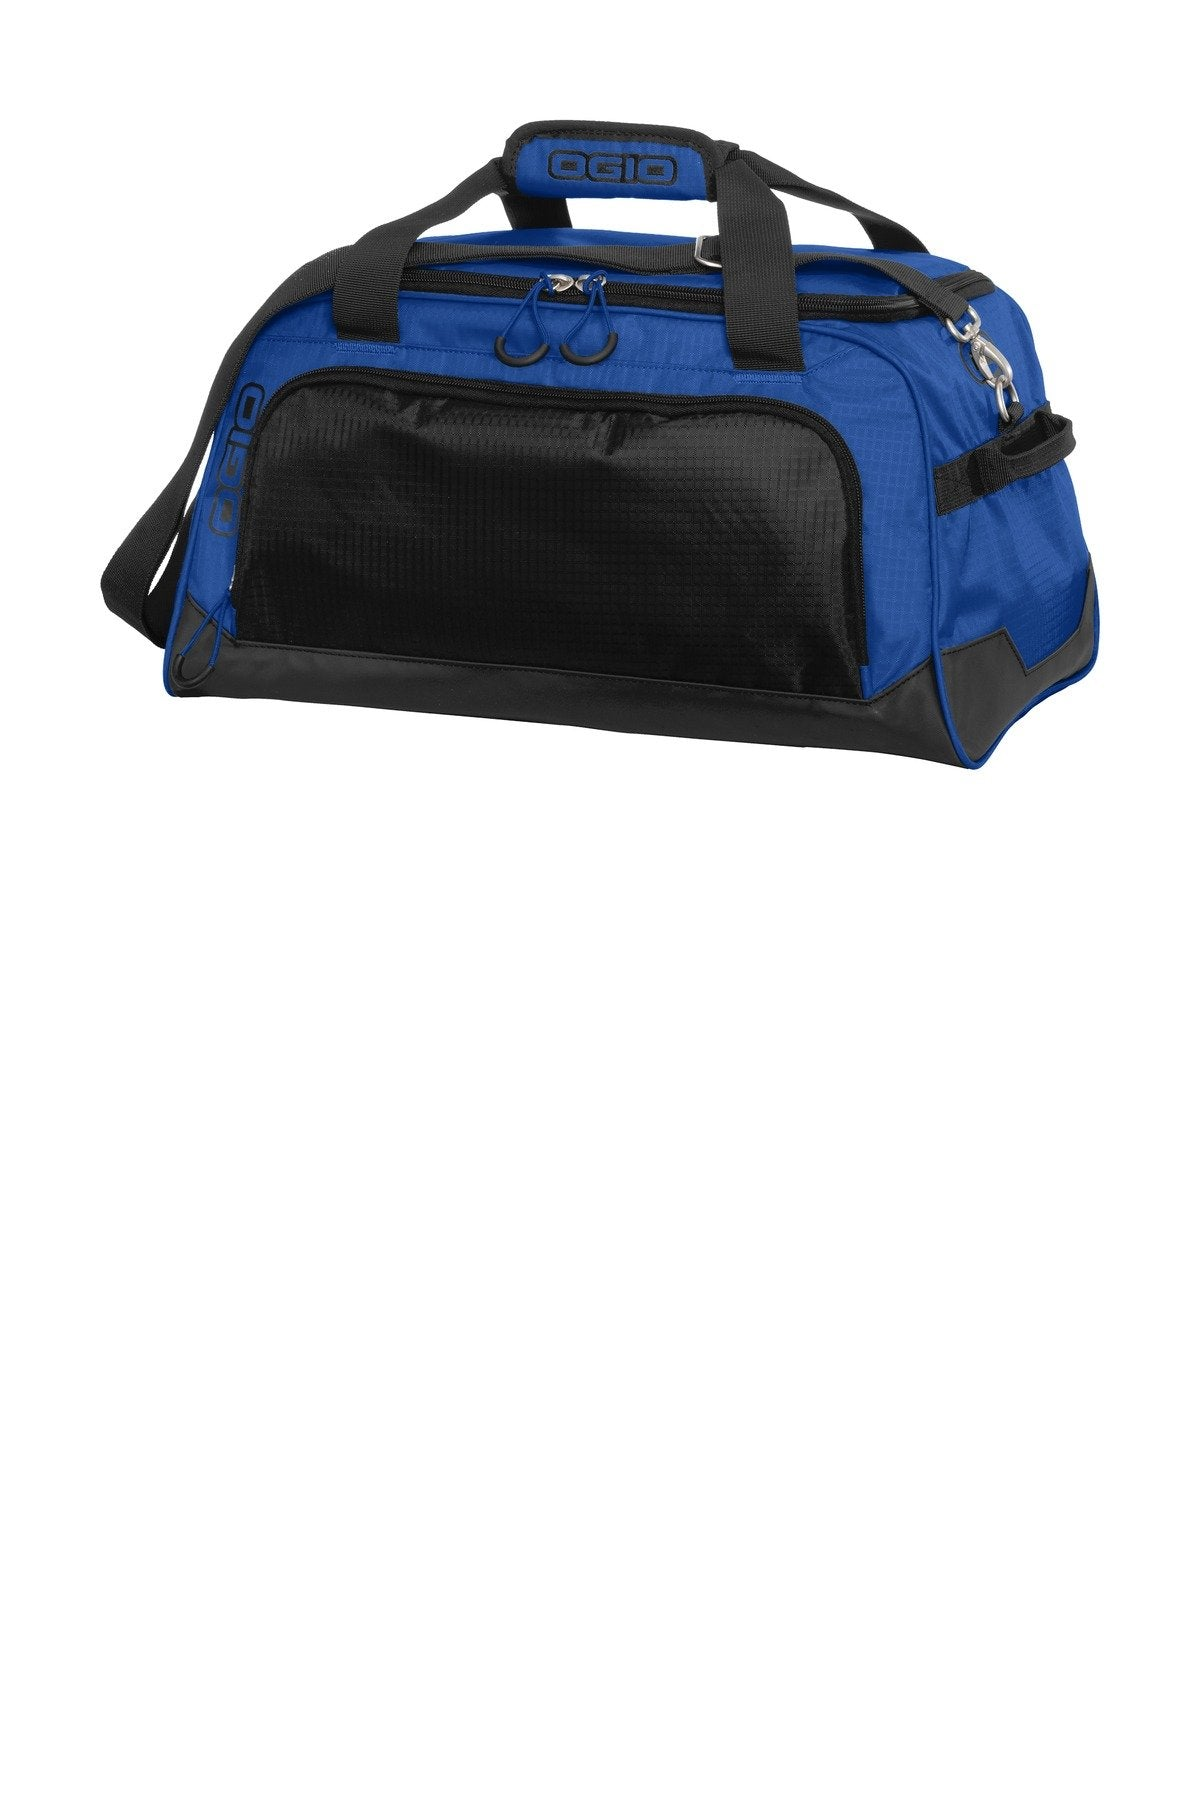 Electric Blue/ Black - OGIO 411095